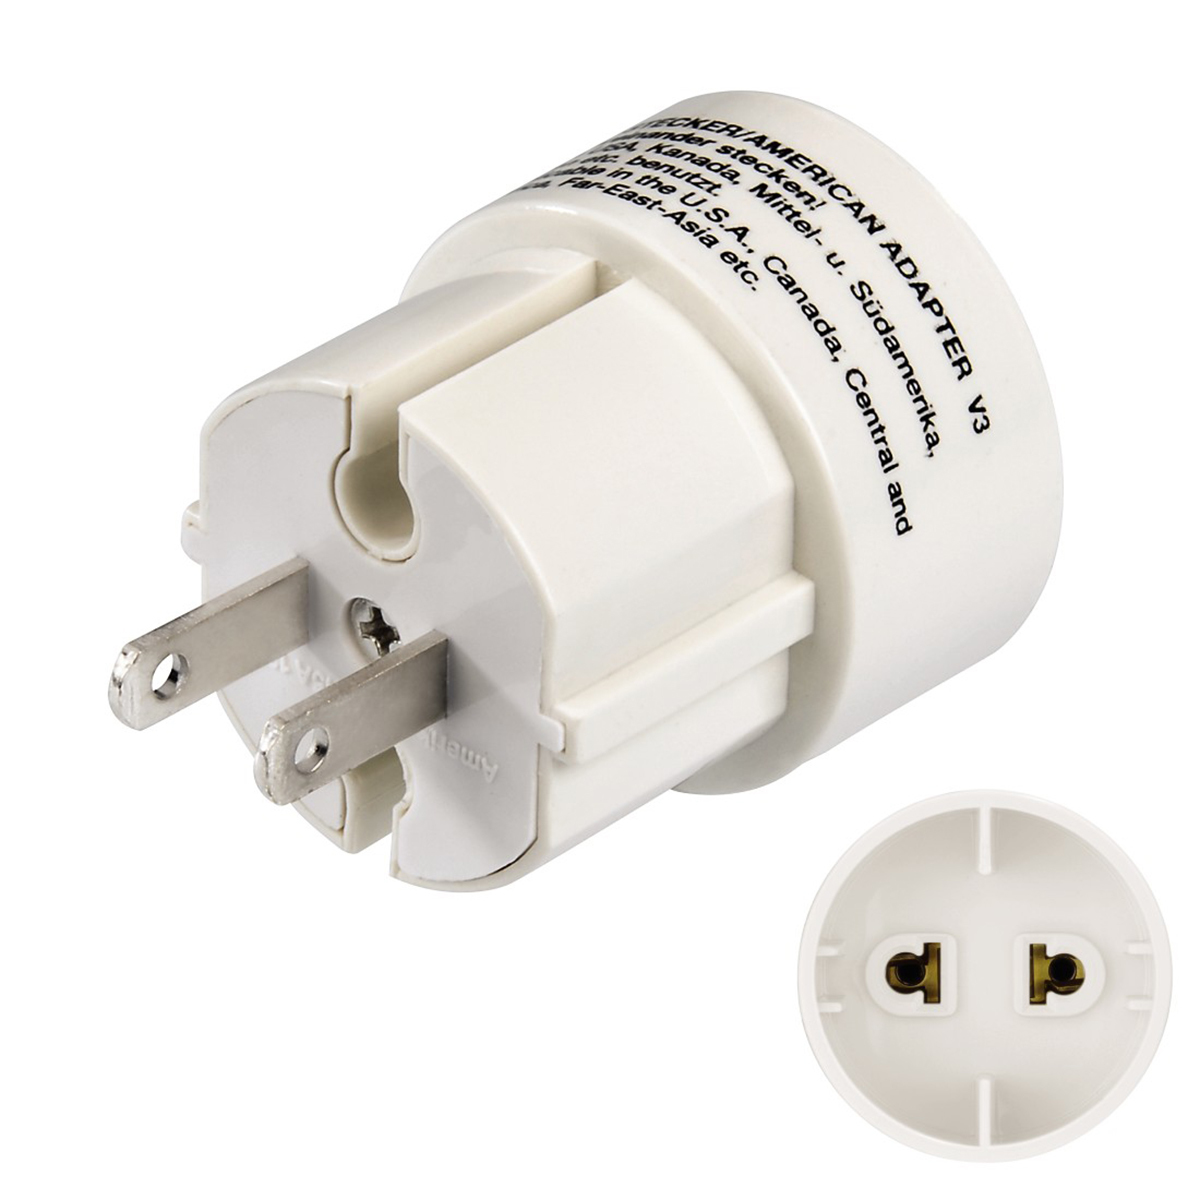 Hama Travel Adapter Plug for America